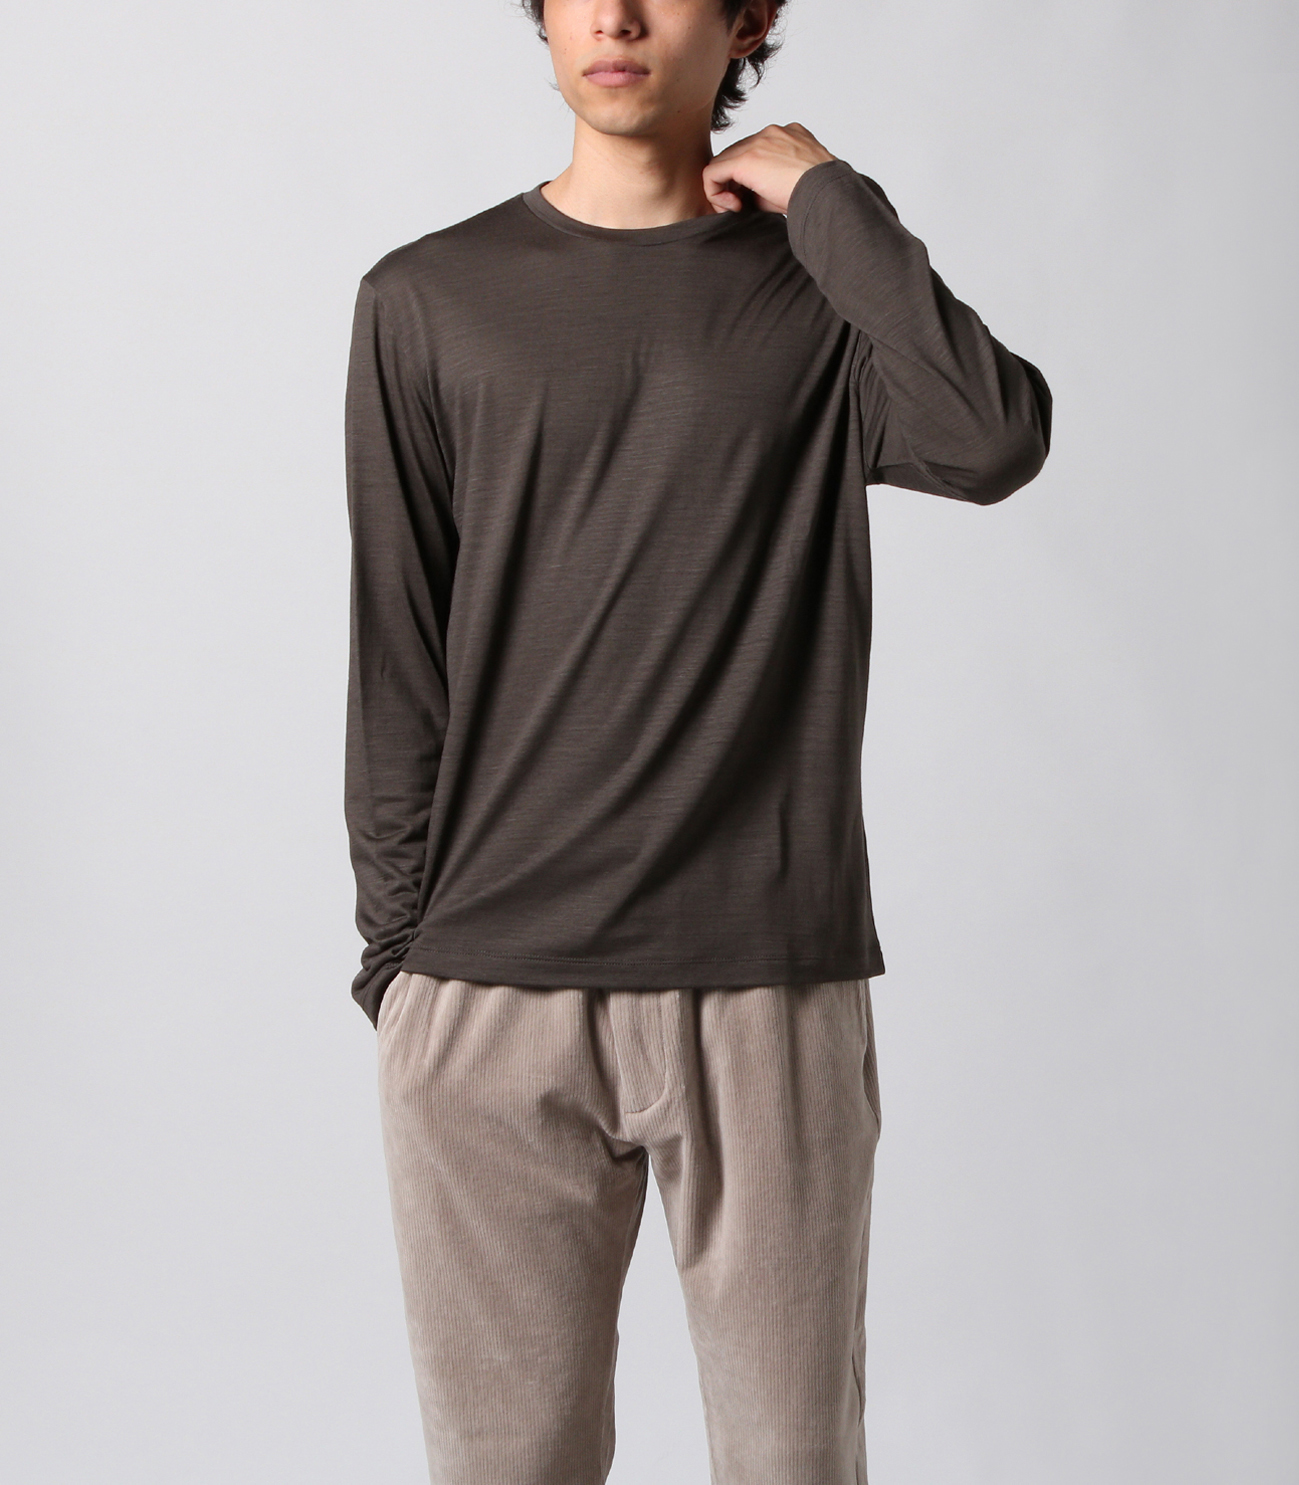 Washable silky dry jersey crewneck 詳細画像 brown 6